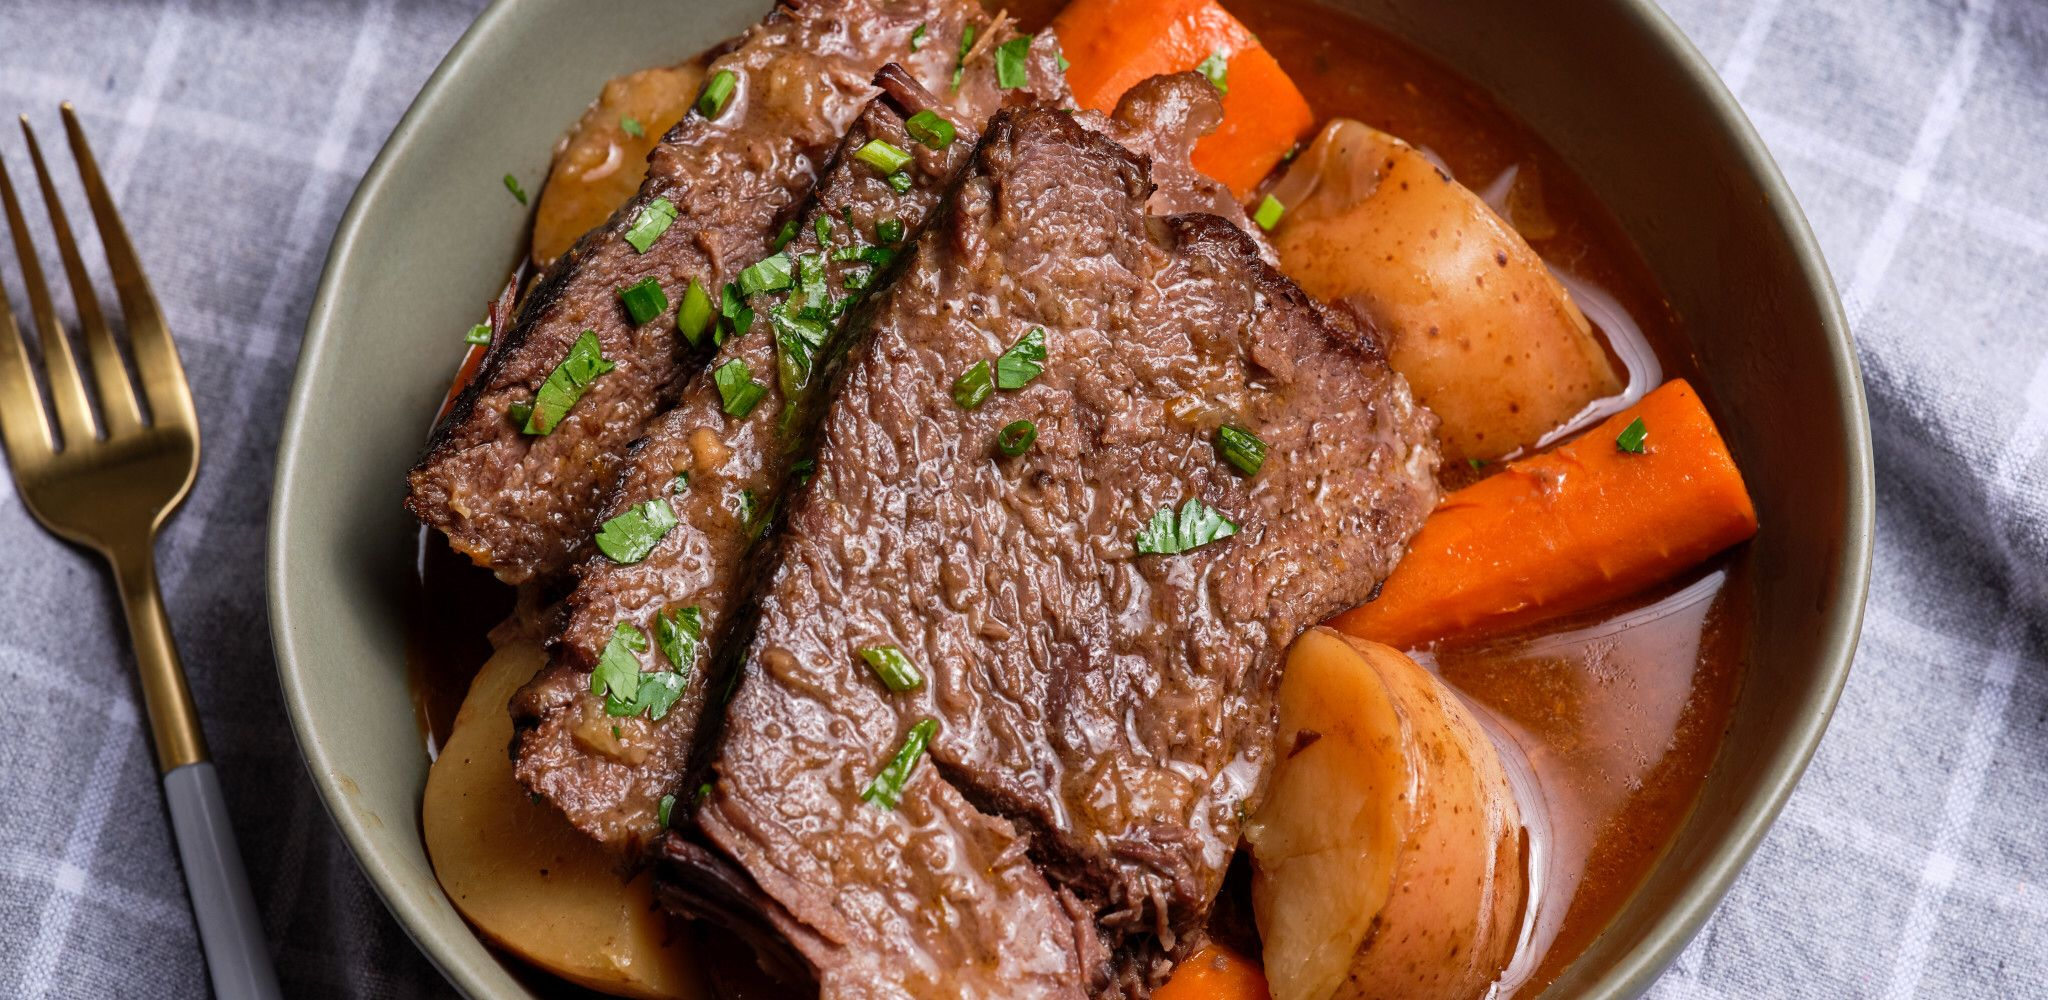 How to Make Beef Stew in a Crock Pot   Slow Cooker Beef Stew ...